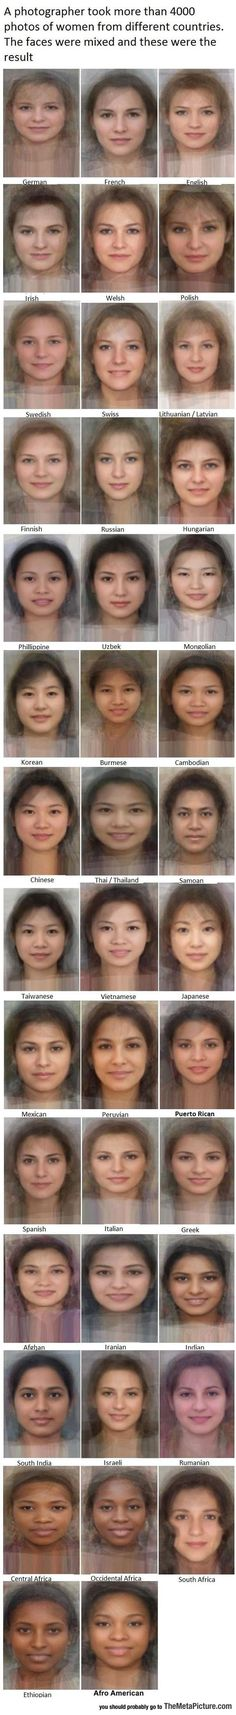 Average Woman From Each Country (Beautiful Mix People)